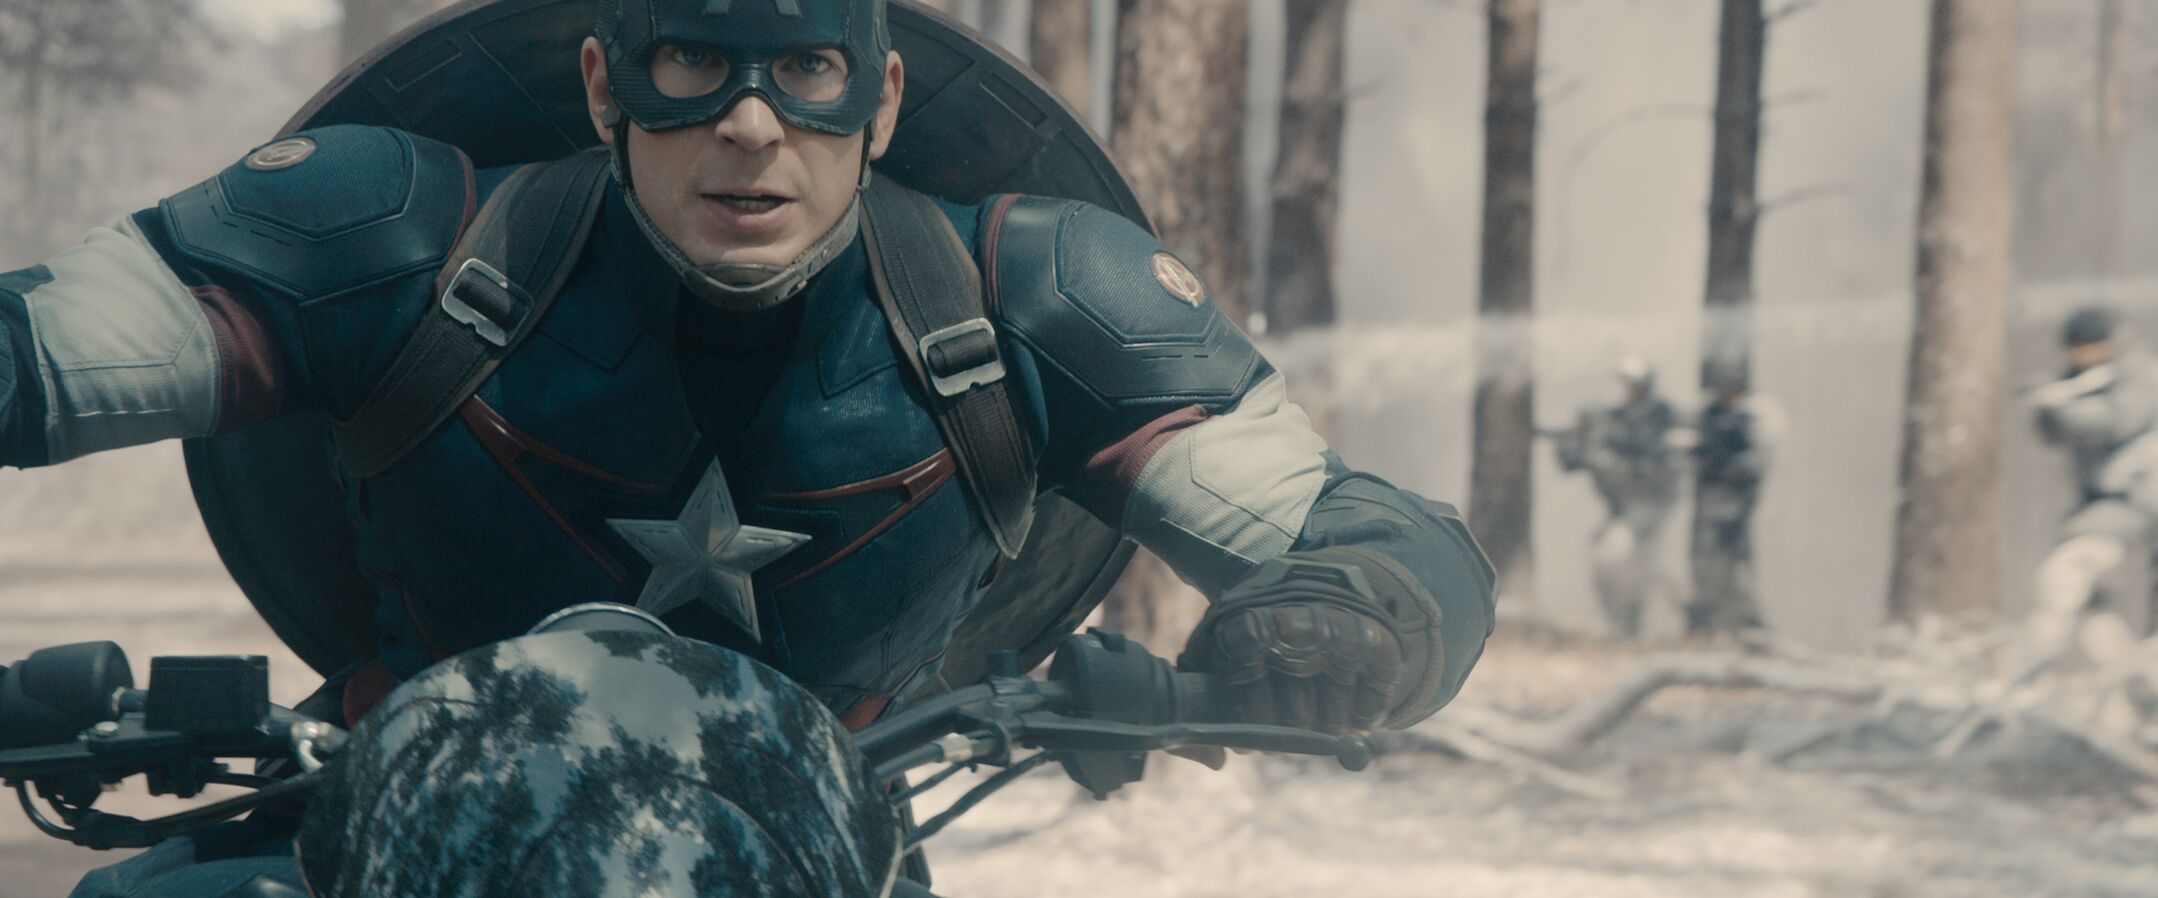 Captain America in Avengers: Age of Ultron. DP Ben Davis use of Blackmagic Pocket Cameras as crash cams was inspired by the movie Rush, shot by Anthony Dod-Mantle.